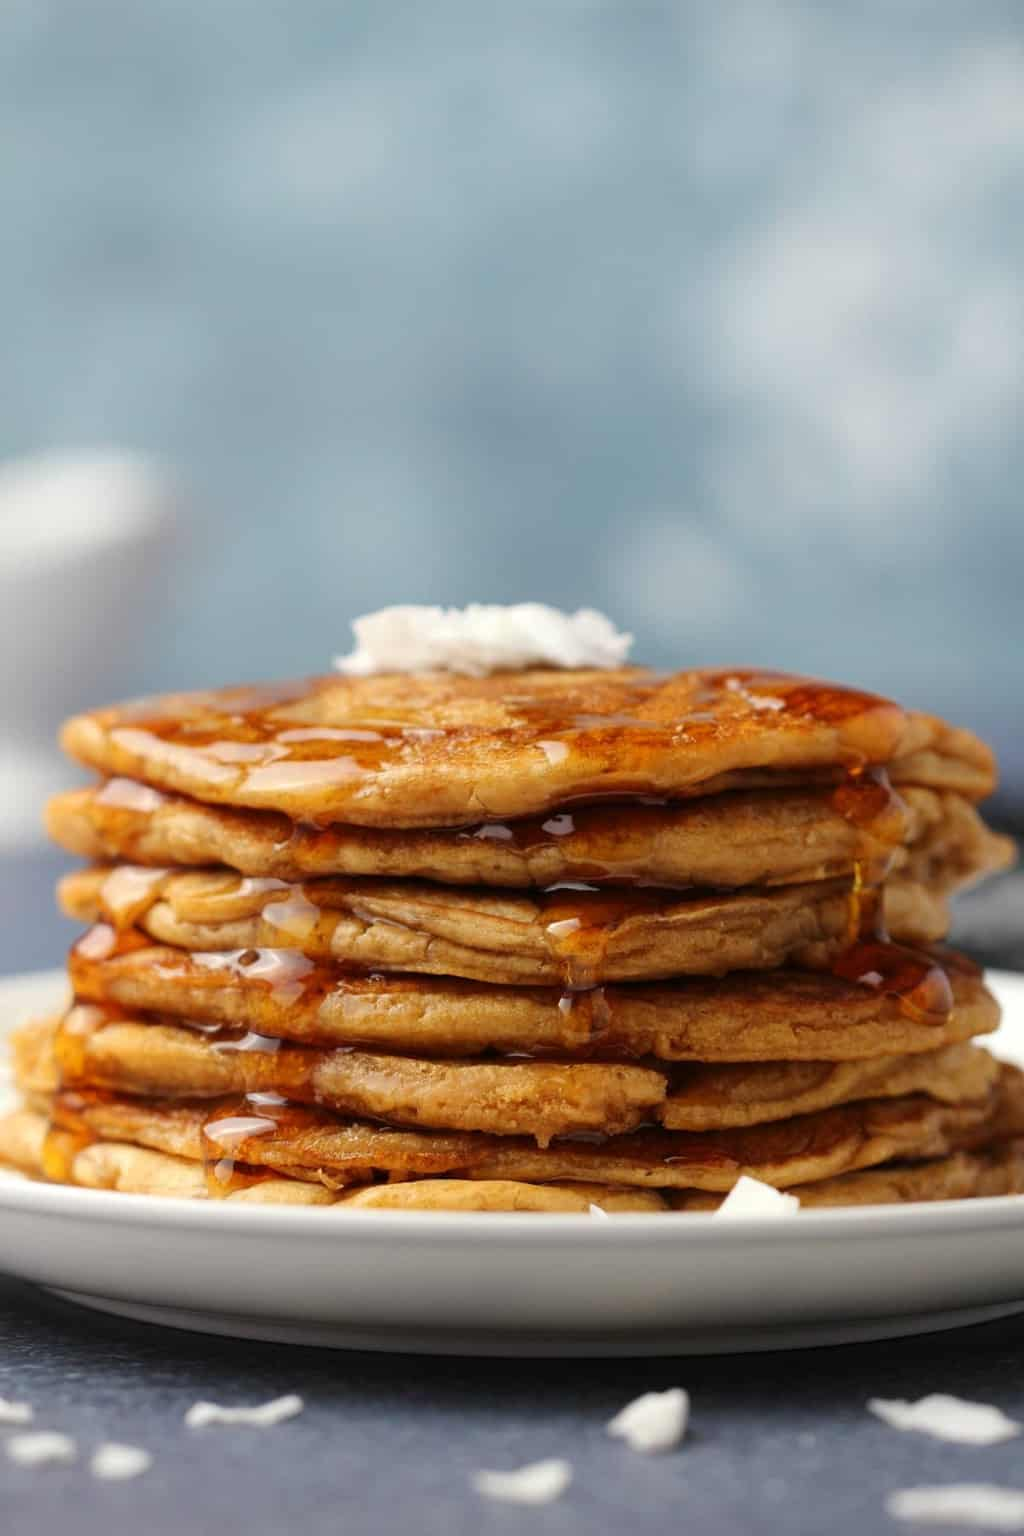 Vegan coconut pancakes topped with coconut flakes and syrup on a white plate.